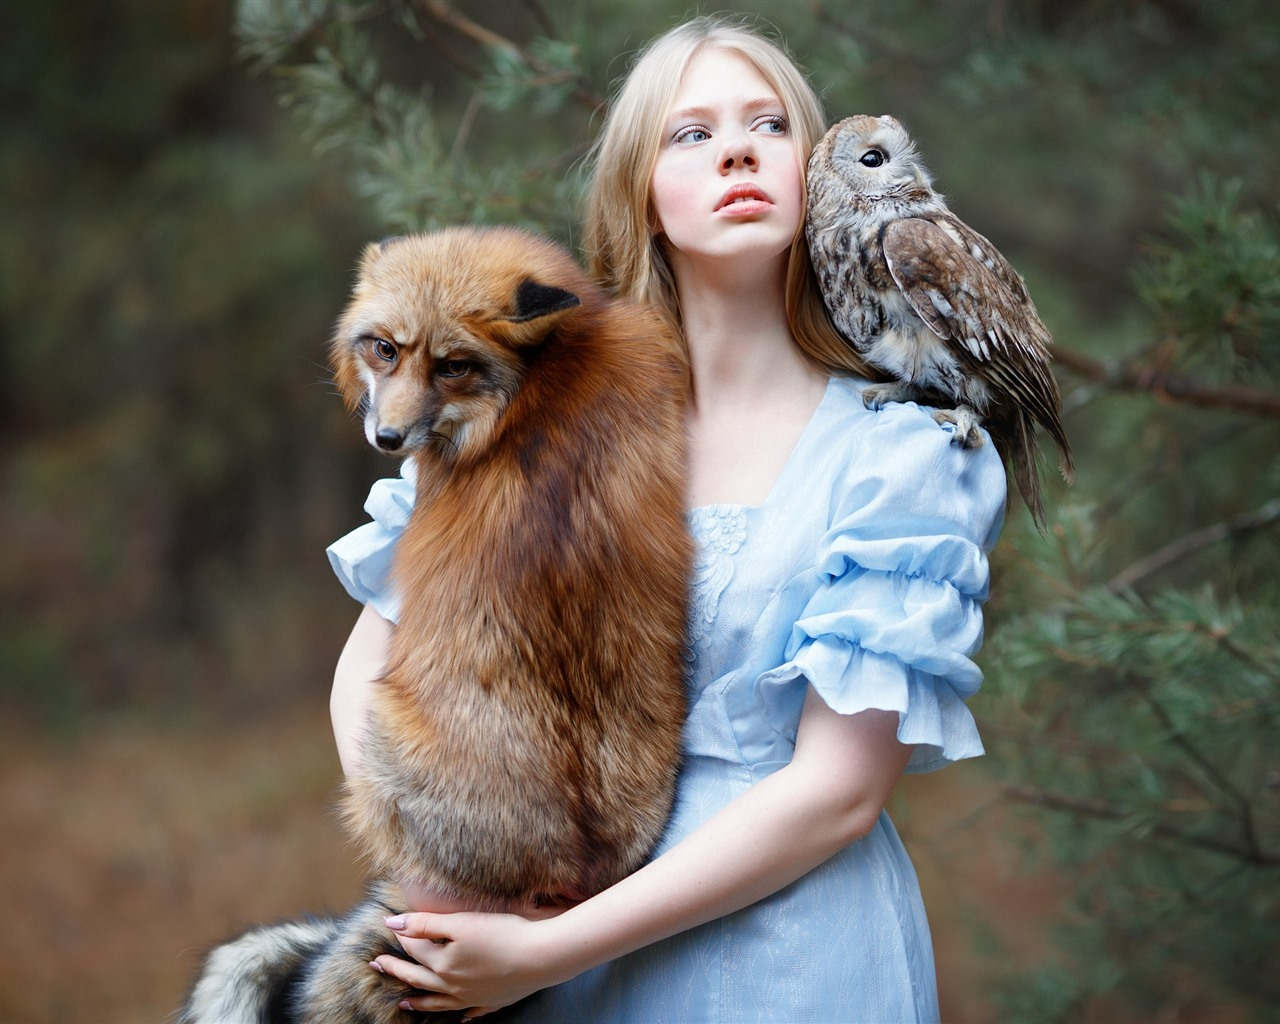 Girl And Fox Owl Friends 750x1334 Iphone 8 7 6 6s